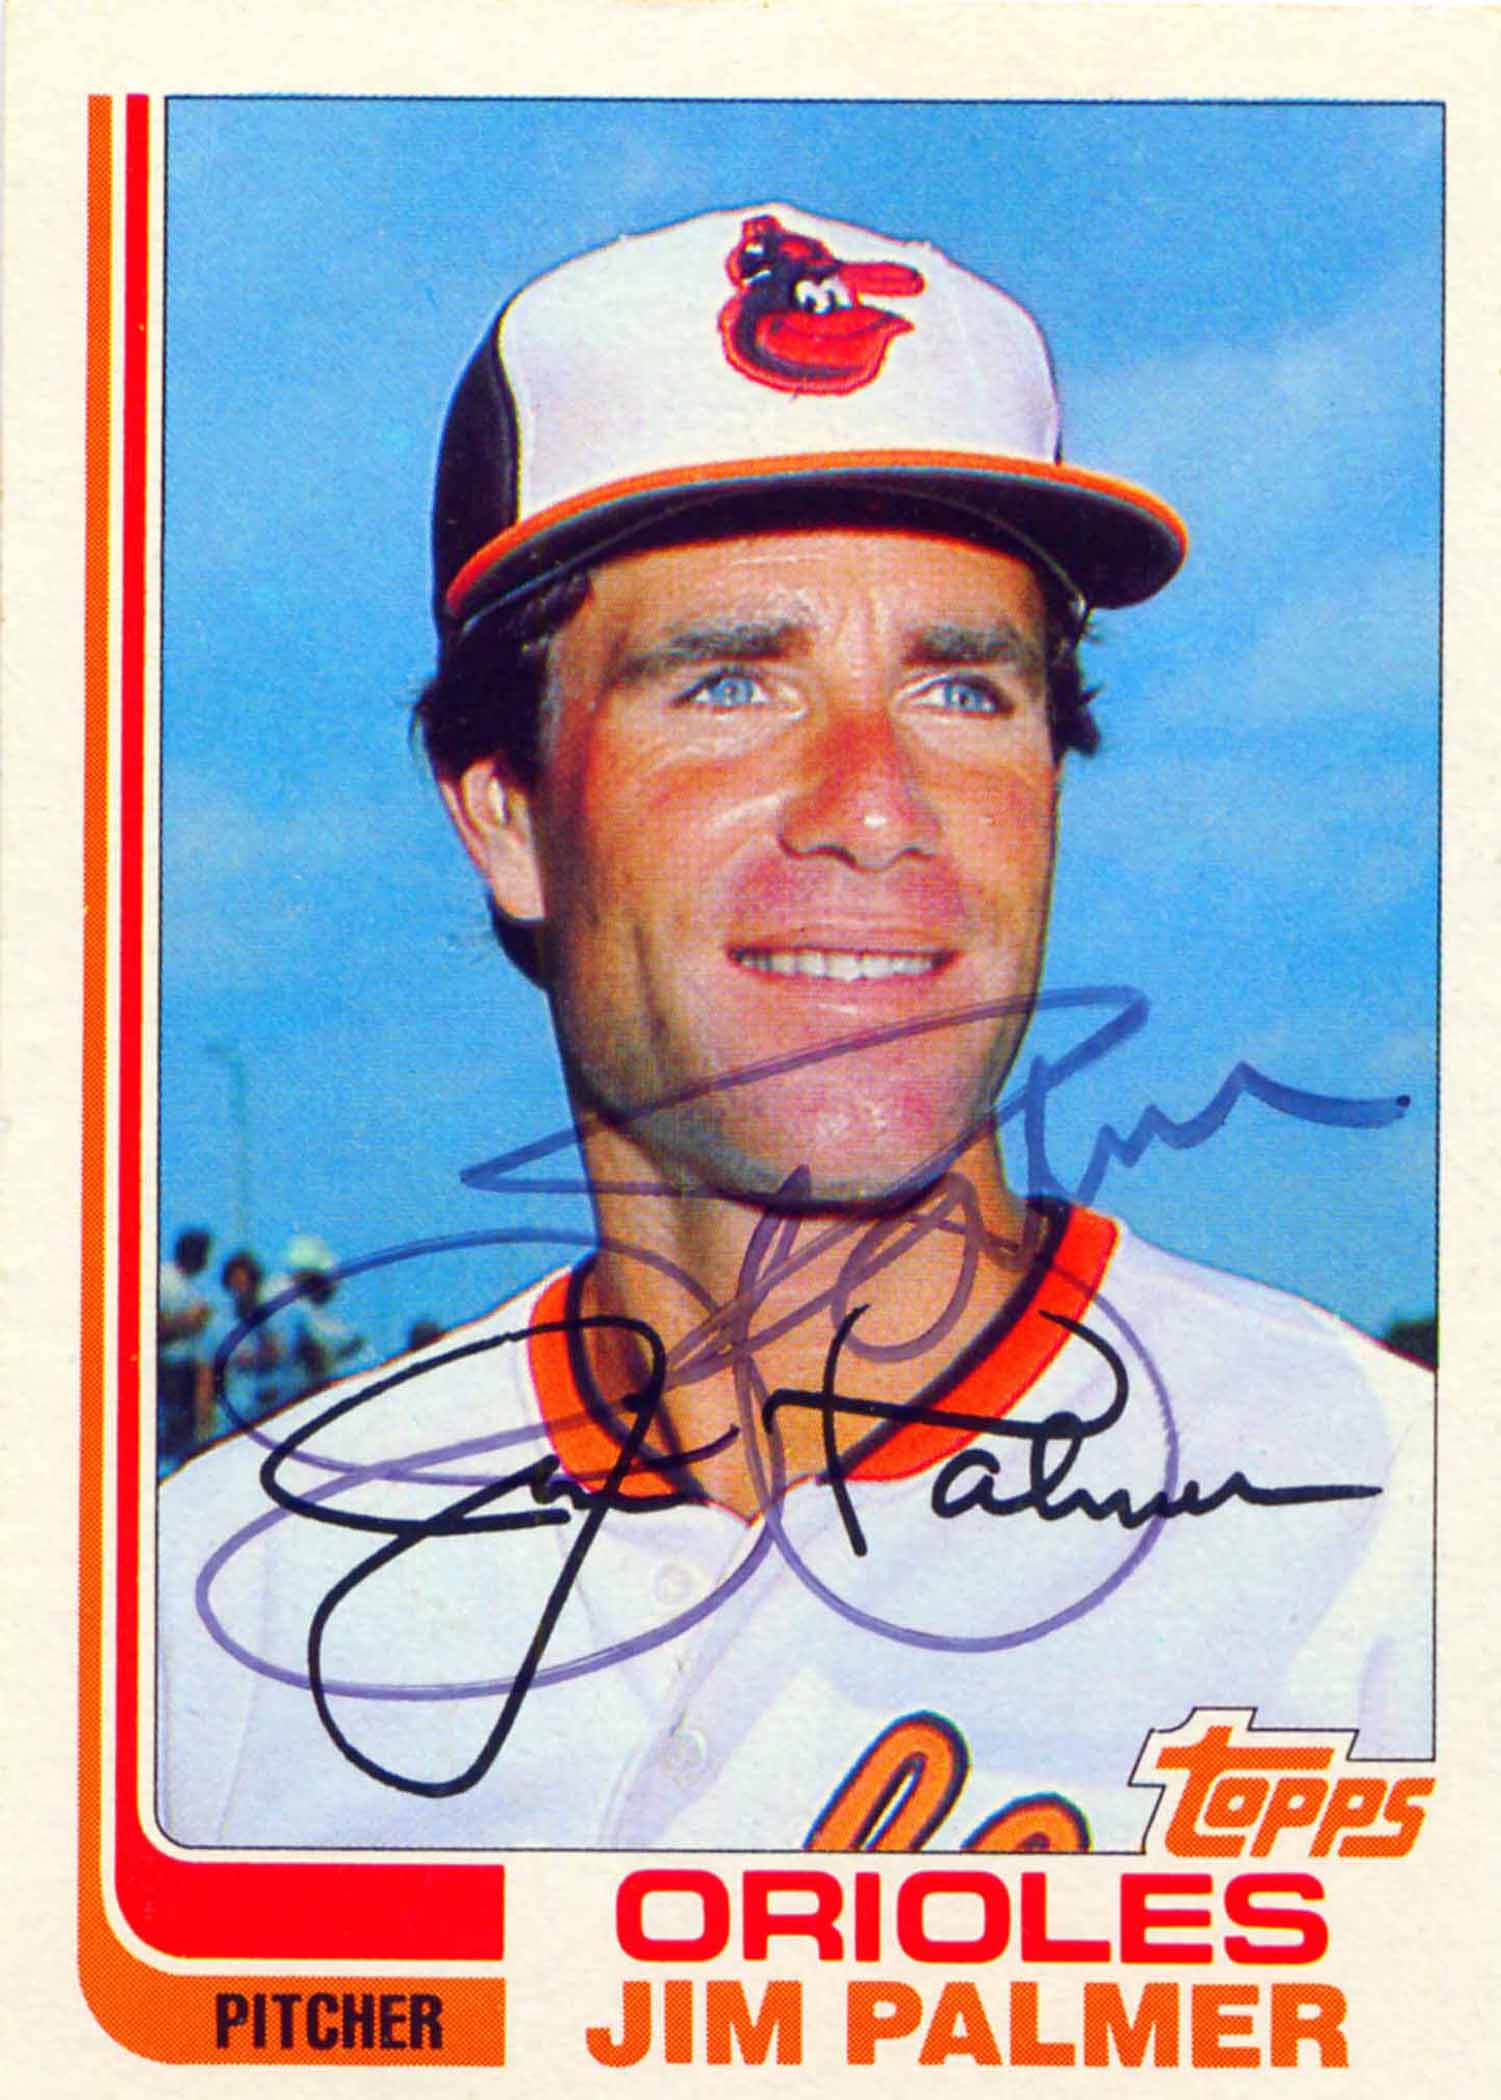 1982 Topps Autographed